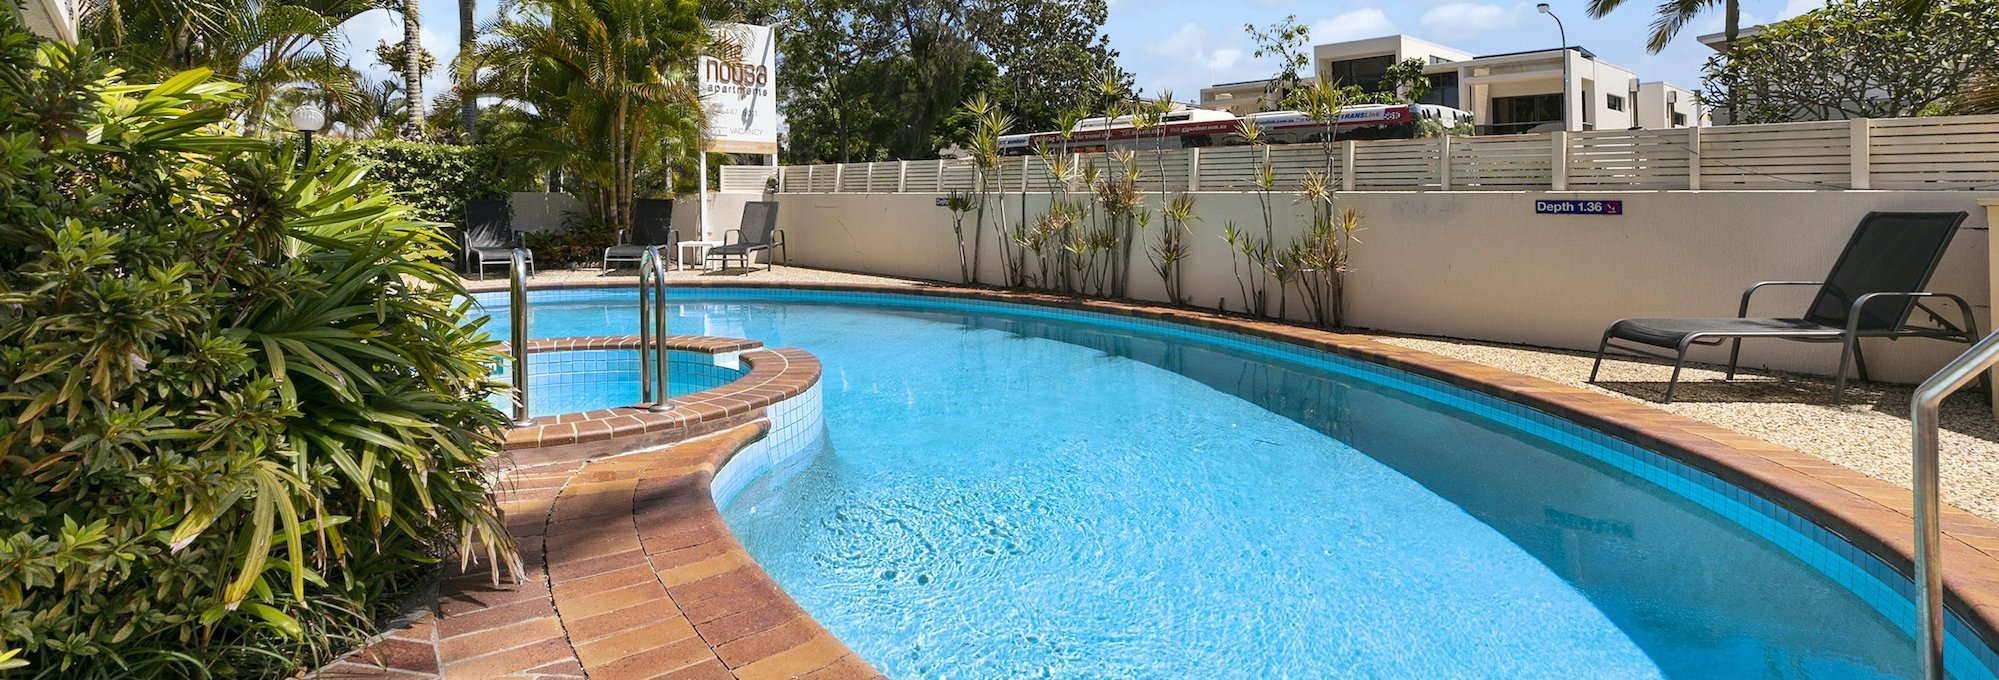 113 Open2view Id679762 45 Noosa Parade Noosa Heads